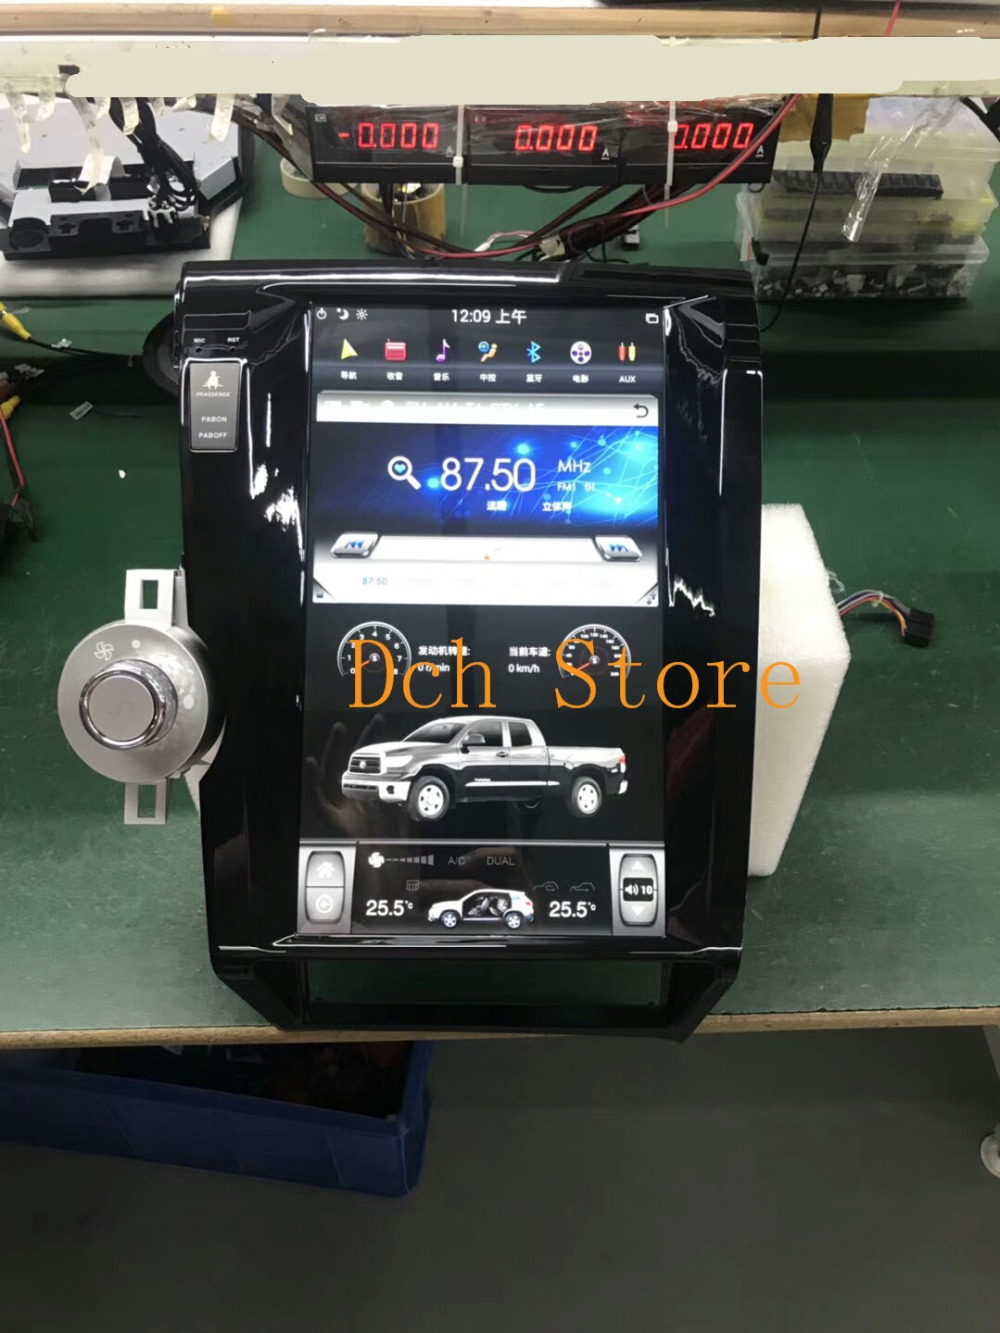 104 Vertical Screen Tesla Style Android 71 Car Dvd Gps Player 2007 Ford Fusion Radio Display 136 Inch For Toyota Tundra Sequoia